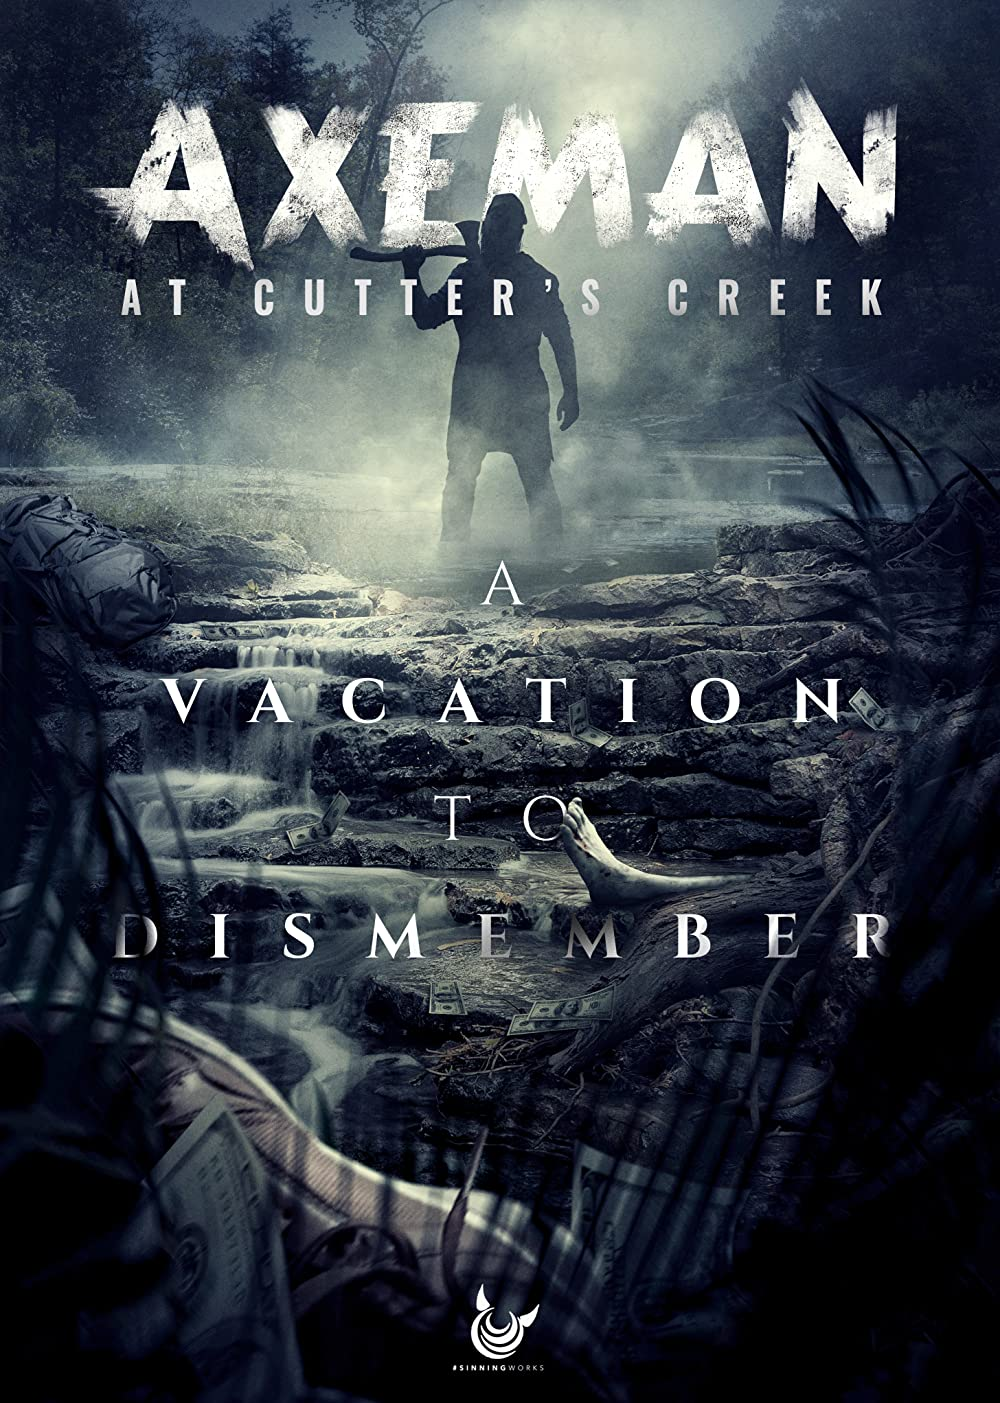 Axeman at Cutters Creek 2021 English 1080p HDRip ESubs 1.43GB Download